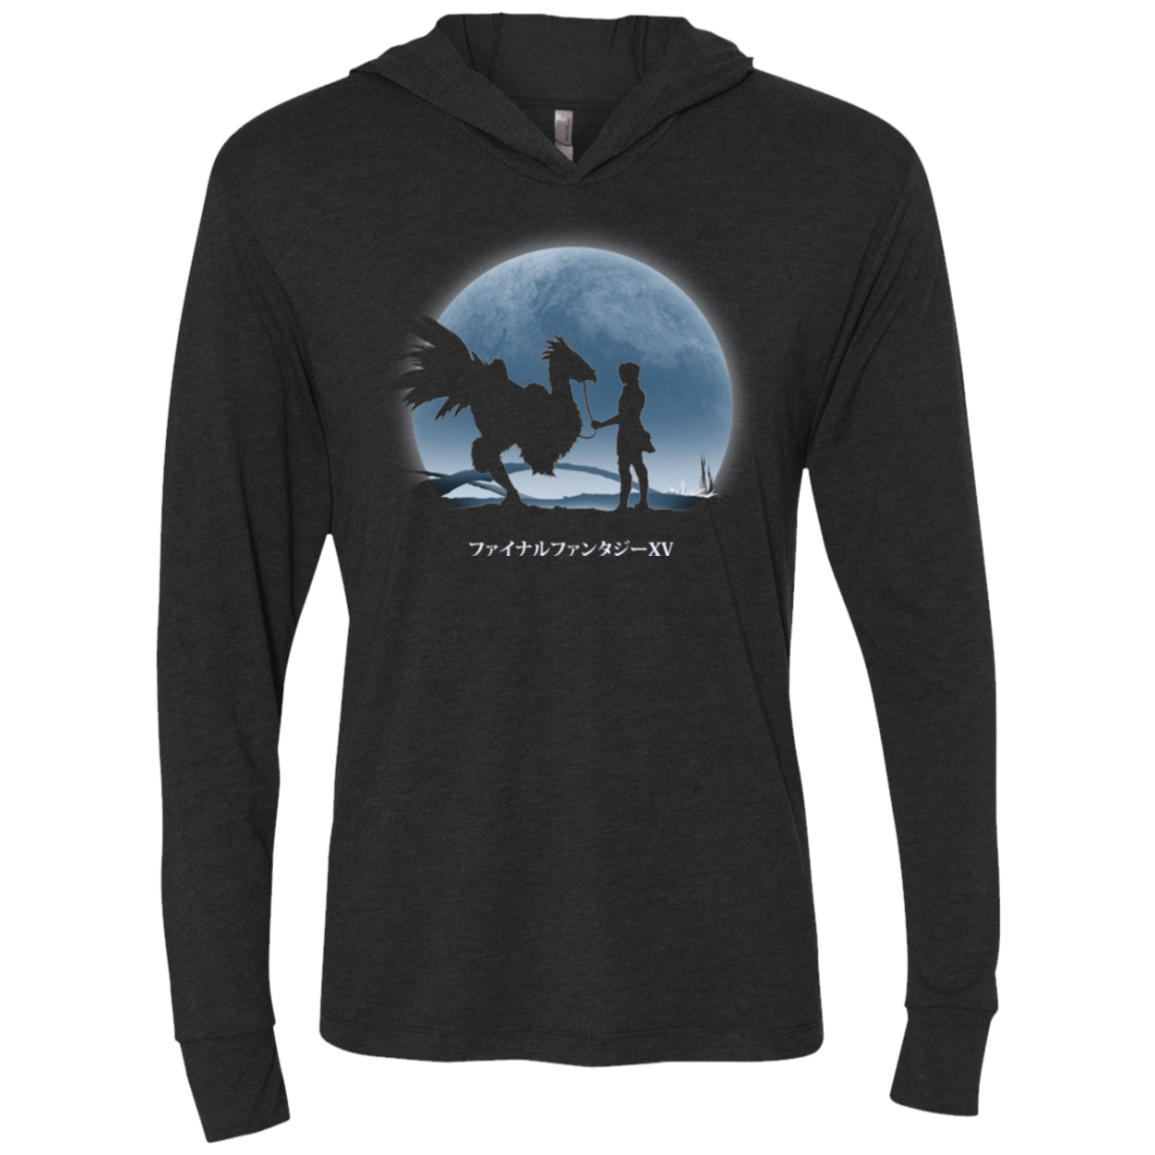 Duscae at Night Triblend Long Sleeve Hoodie Tee